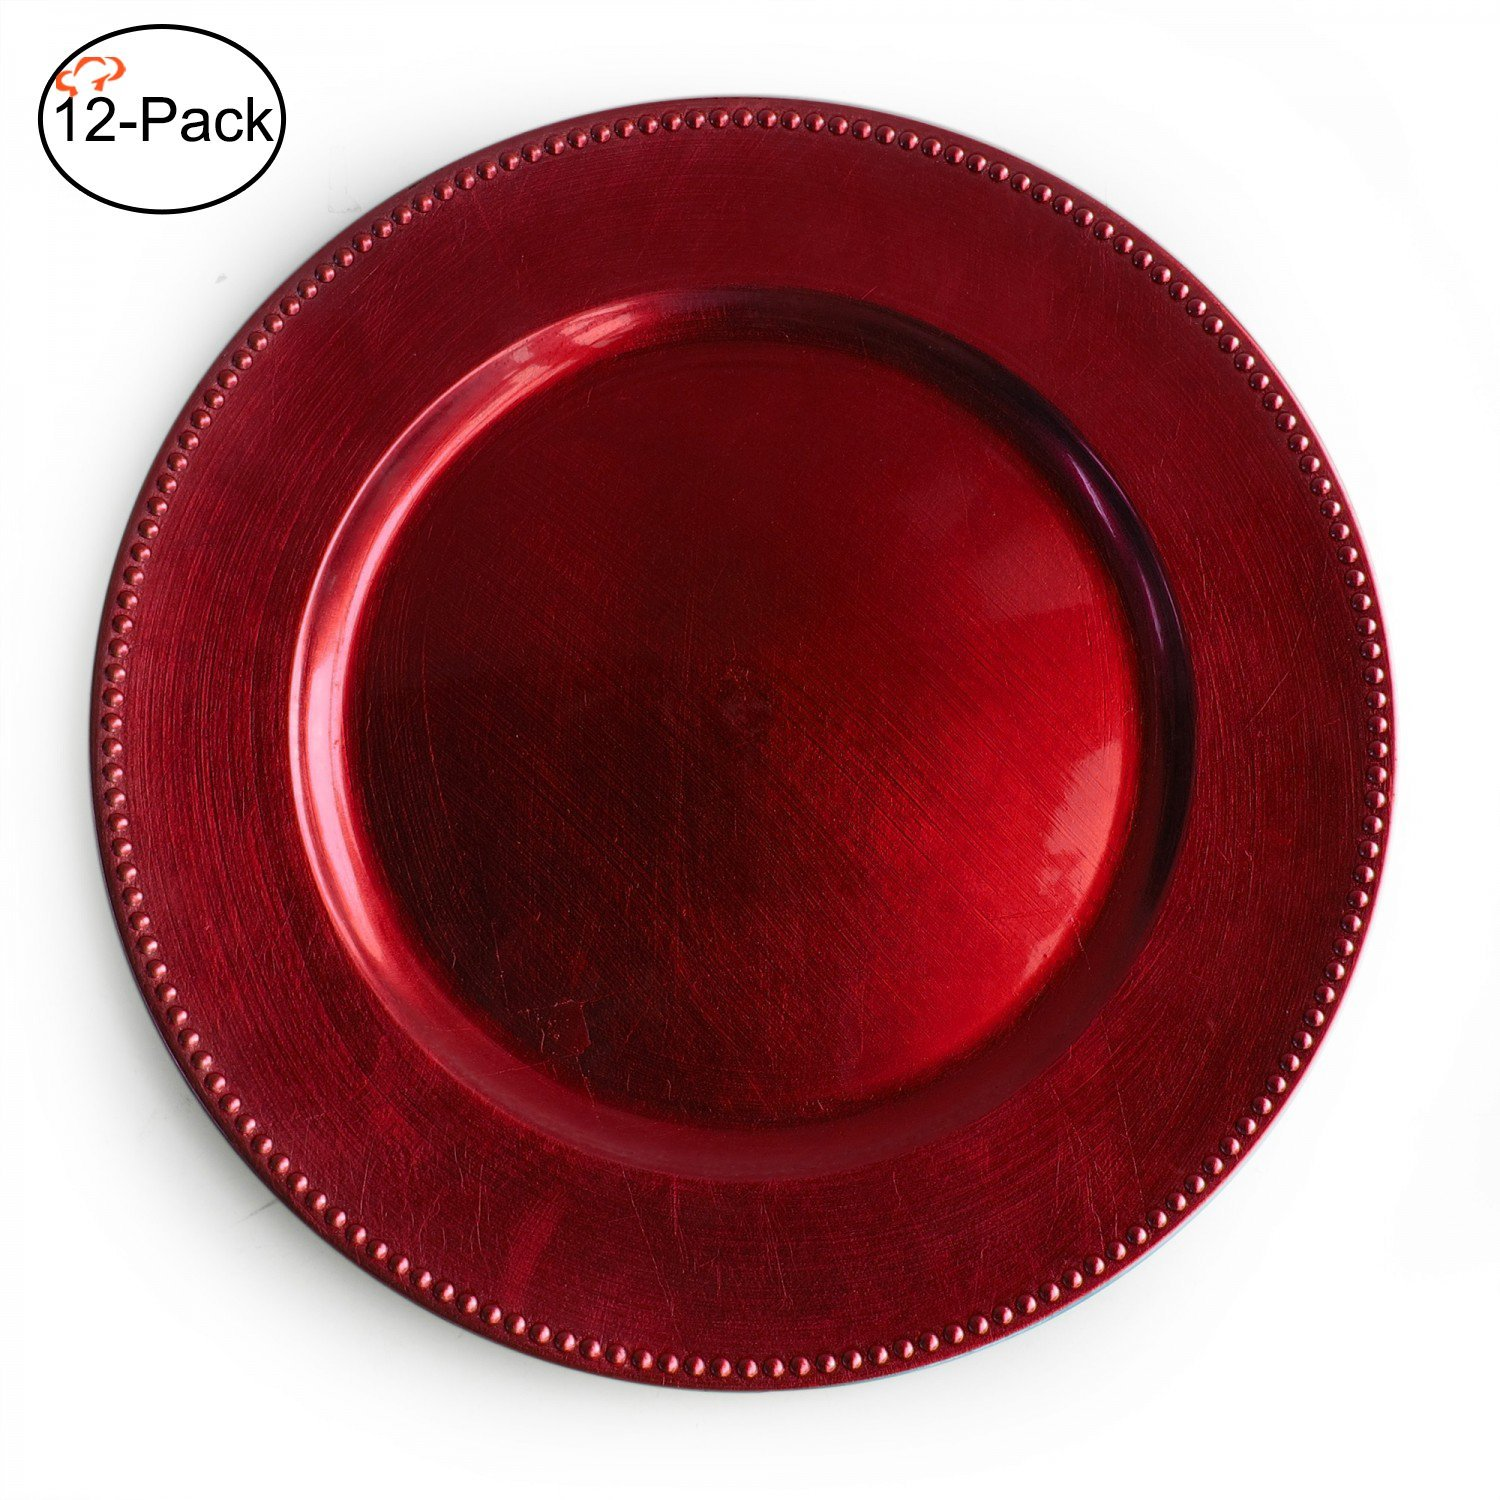 13 Inch Red Round Beaded Charger Plates, Set Of 2,4,6, 12 Or 24 Dinner  Chargers (12 Pack),   ELEGANT DINING: The Metallic Lacquer And Beaded Trim  Along The ...